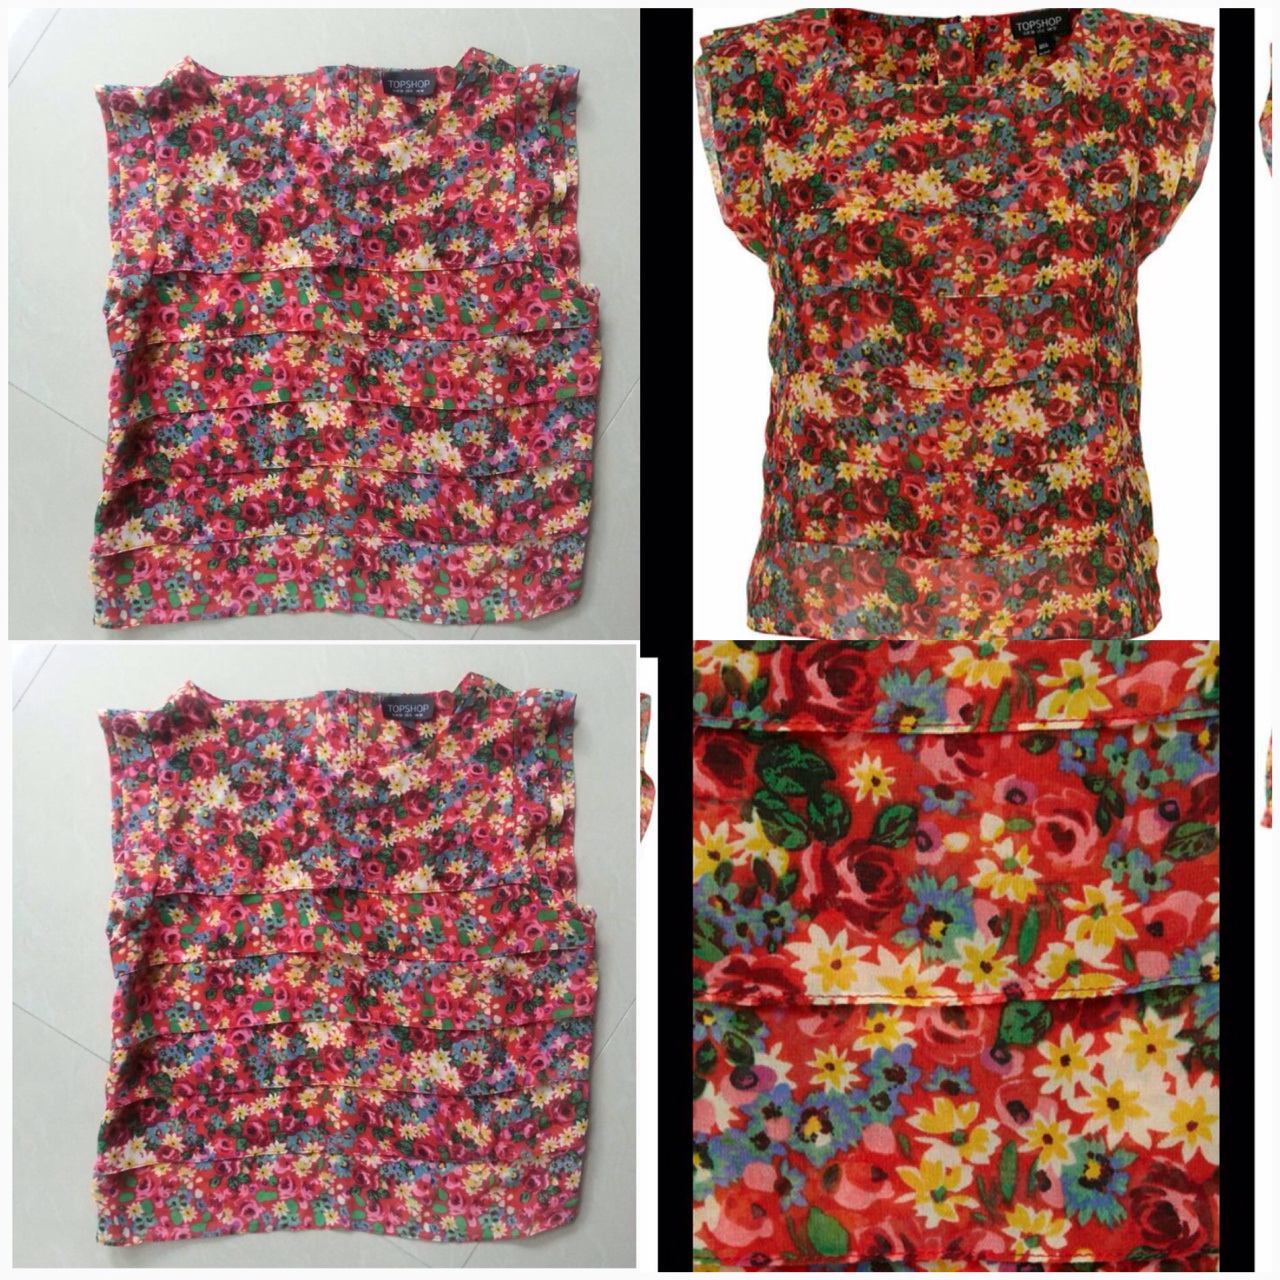 Topshop Floral Top Size uk8 and UK 10